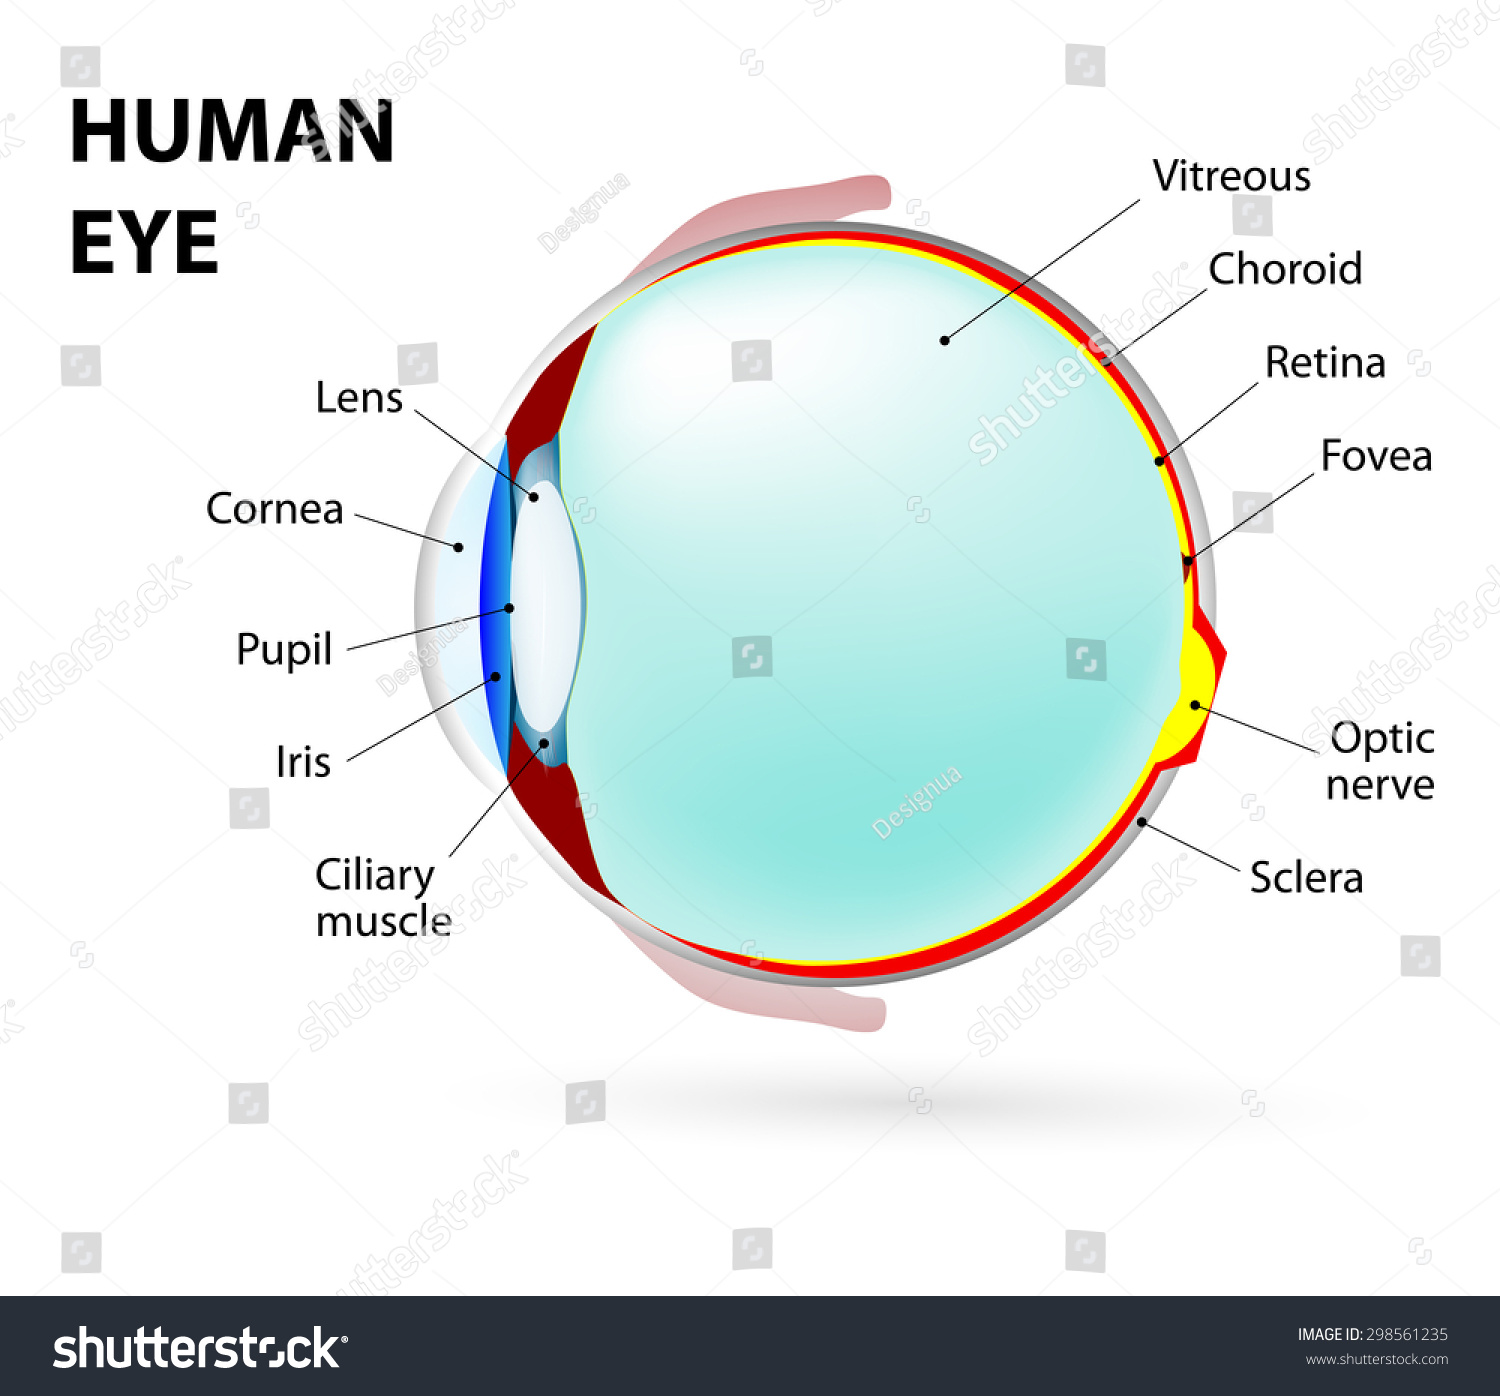 hight resolution of schematic diagram of the eye human anatomy labeled